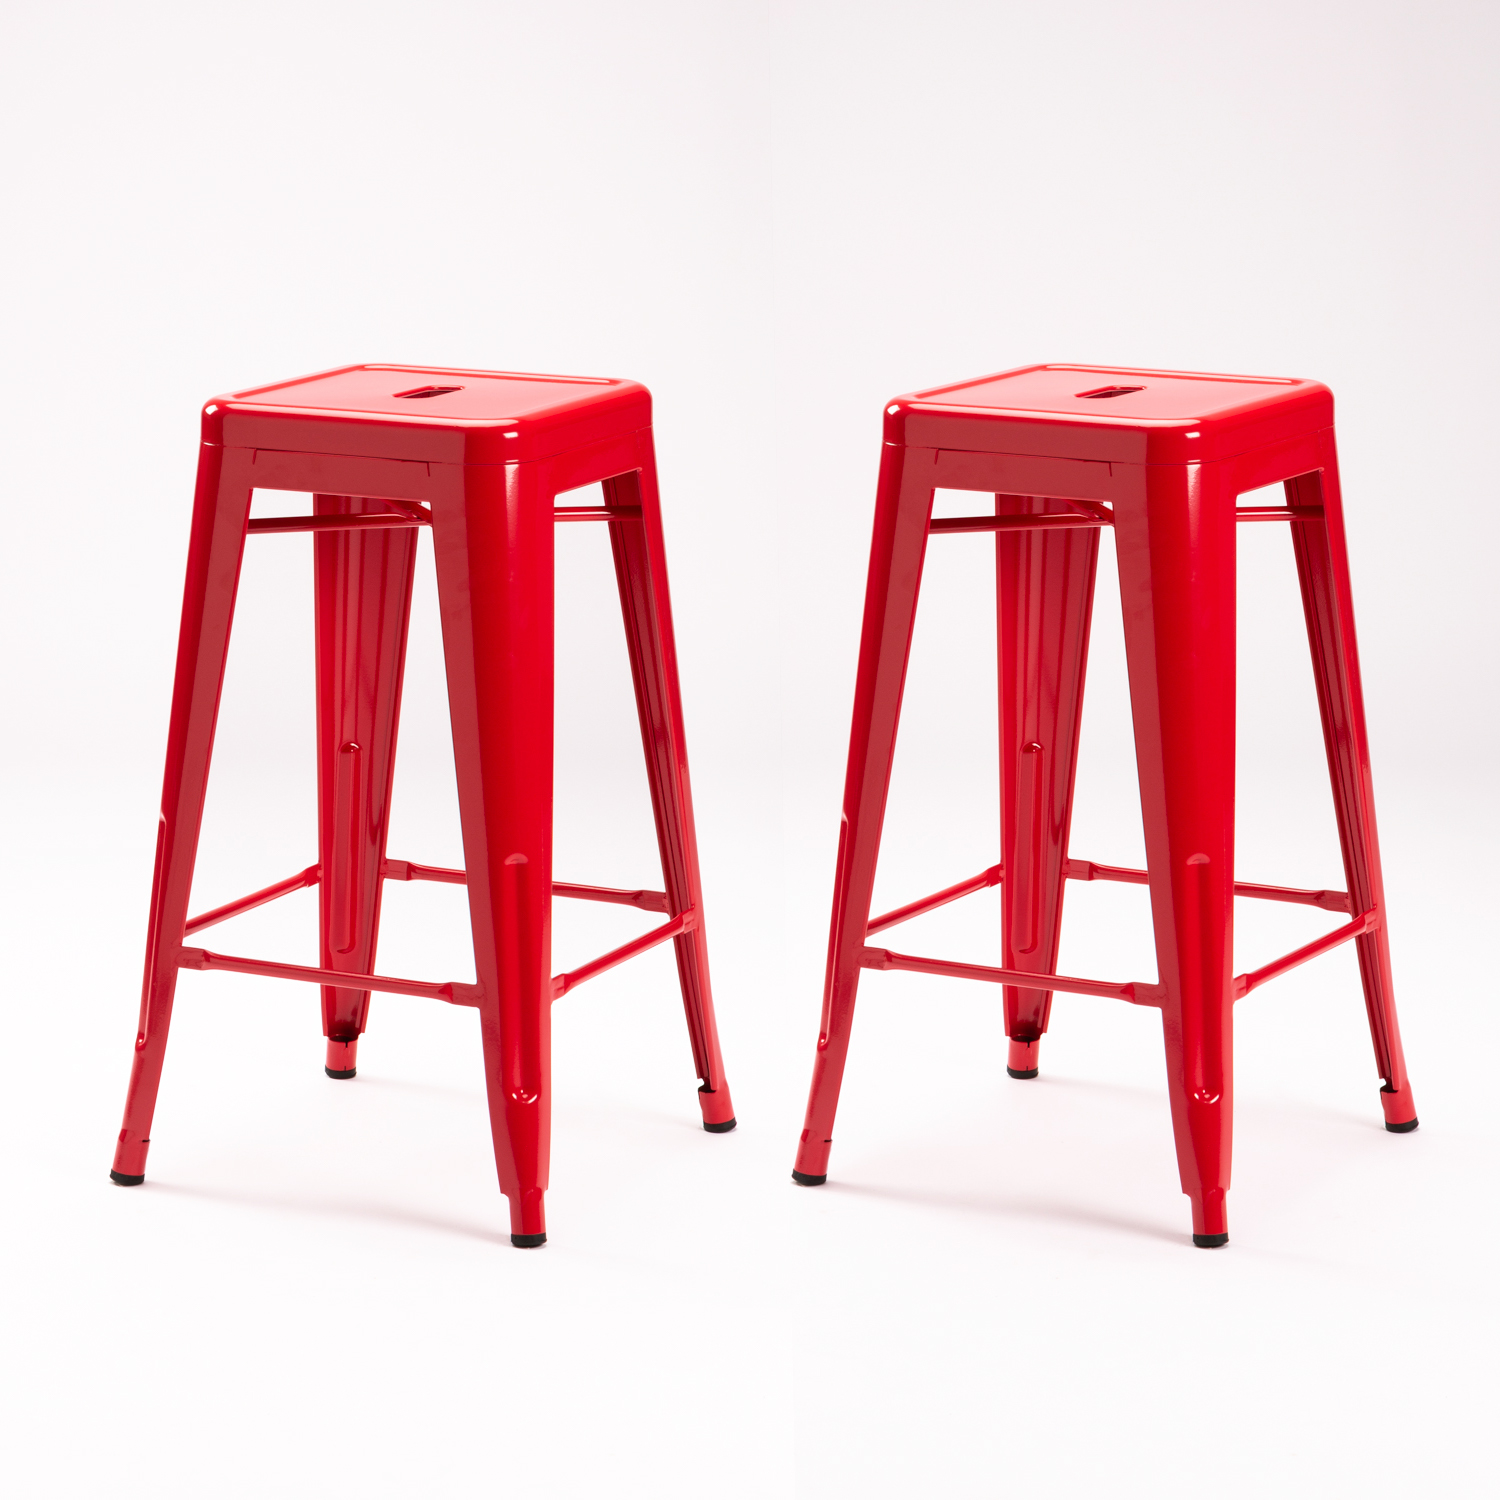 2 X TOLIX KITCHEN STOOL -RED